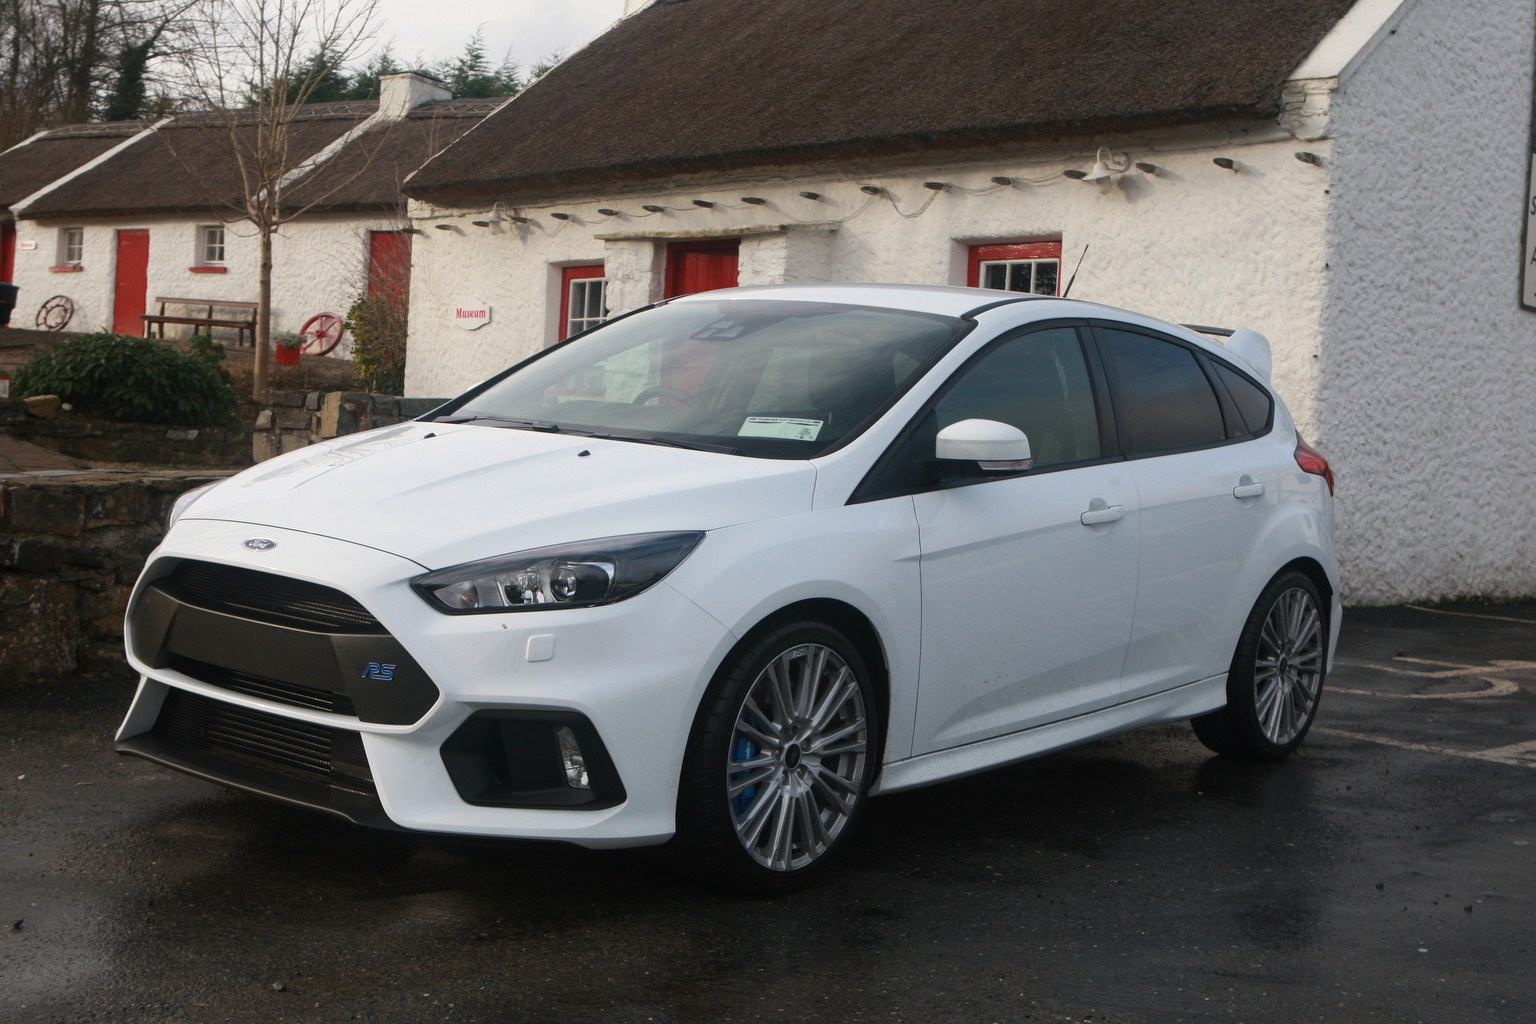 dd motoring the ford focus rs donegal daily. Black Bedroom Furniture Sets. Home Design Ideas